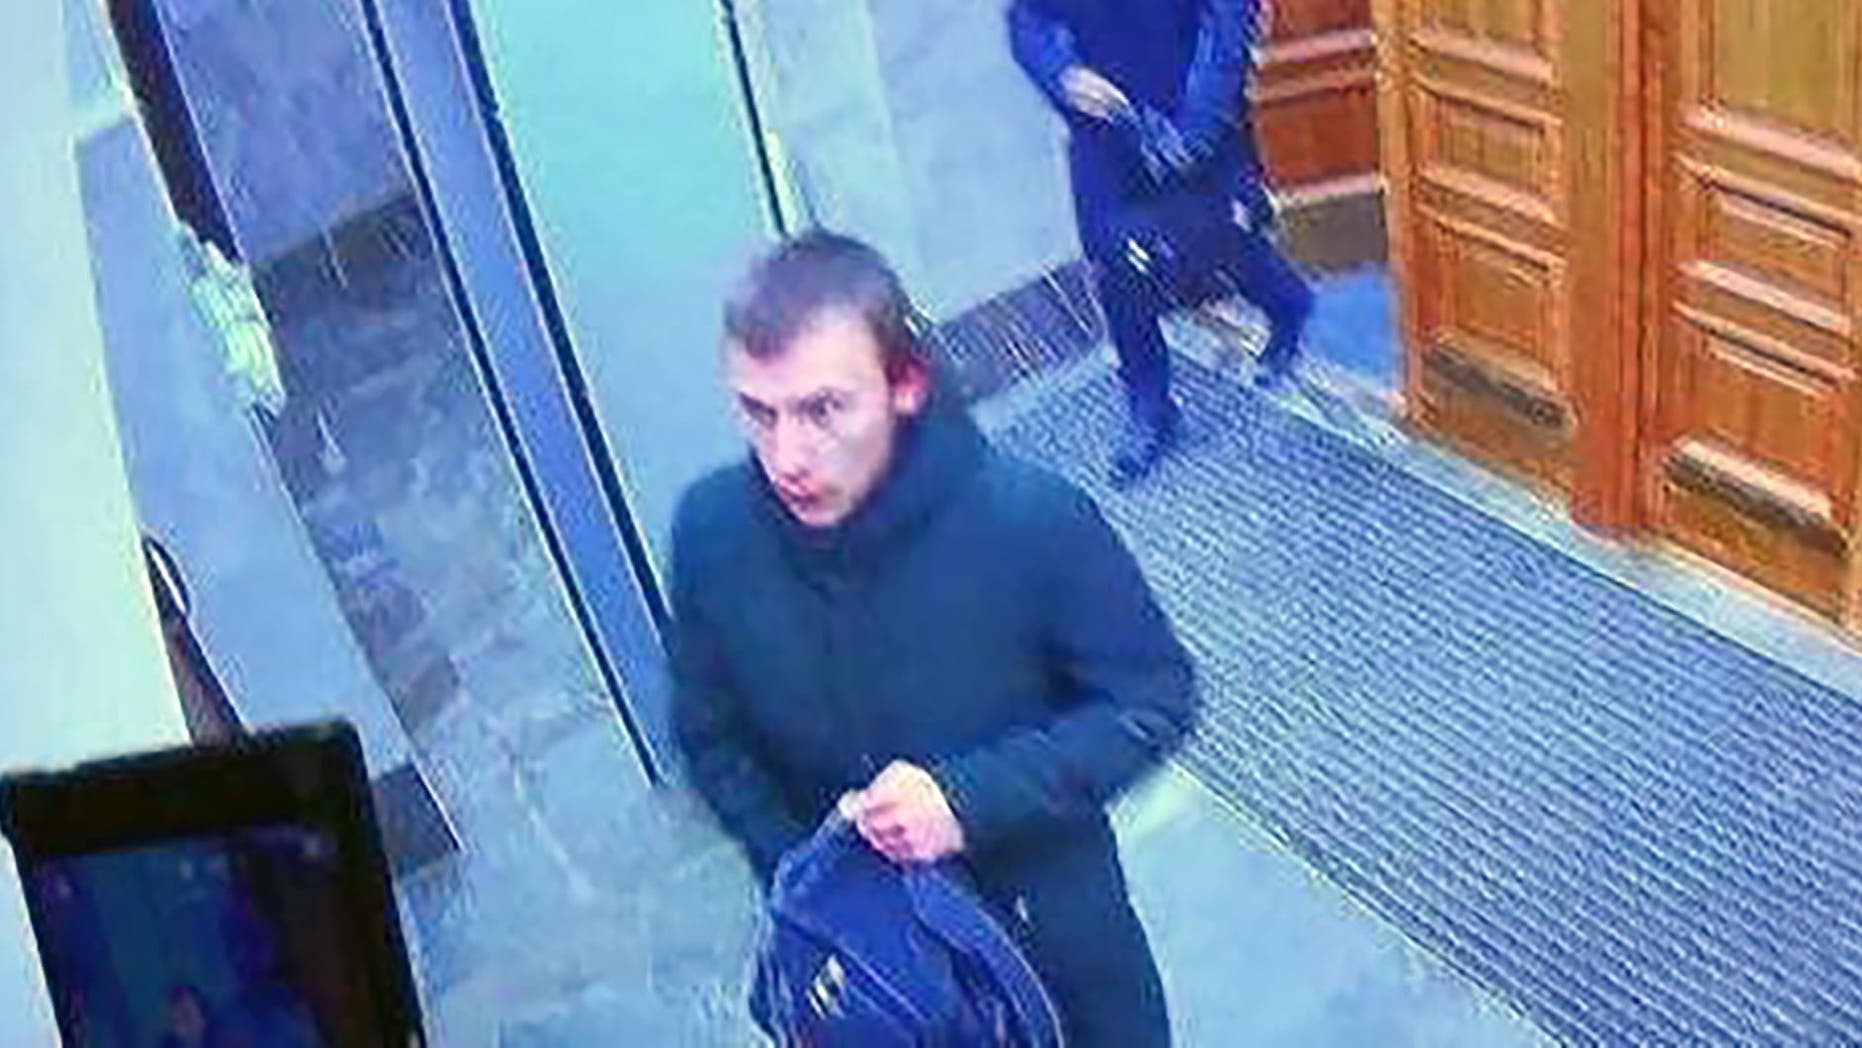 A bomber killed himself Wednesday inside one of the offices of Russia's Federal Security Service.